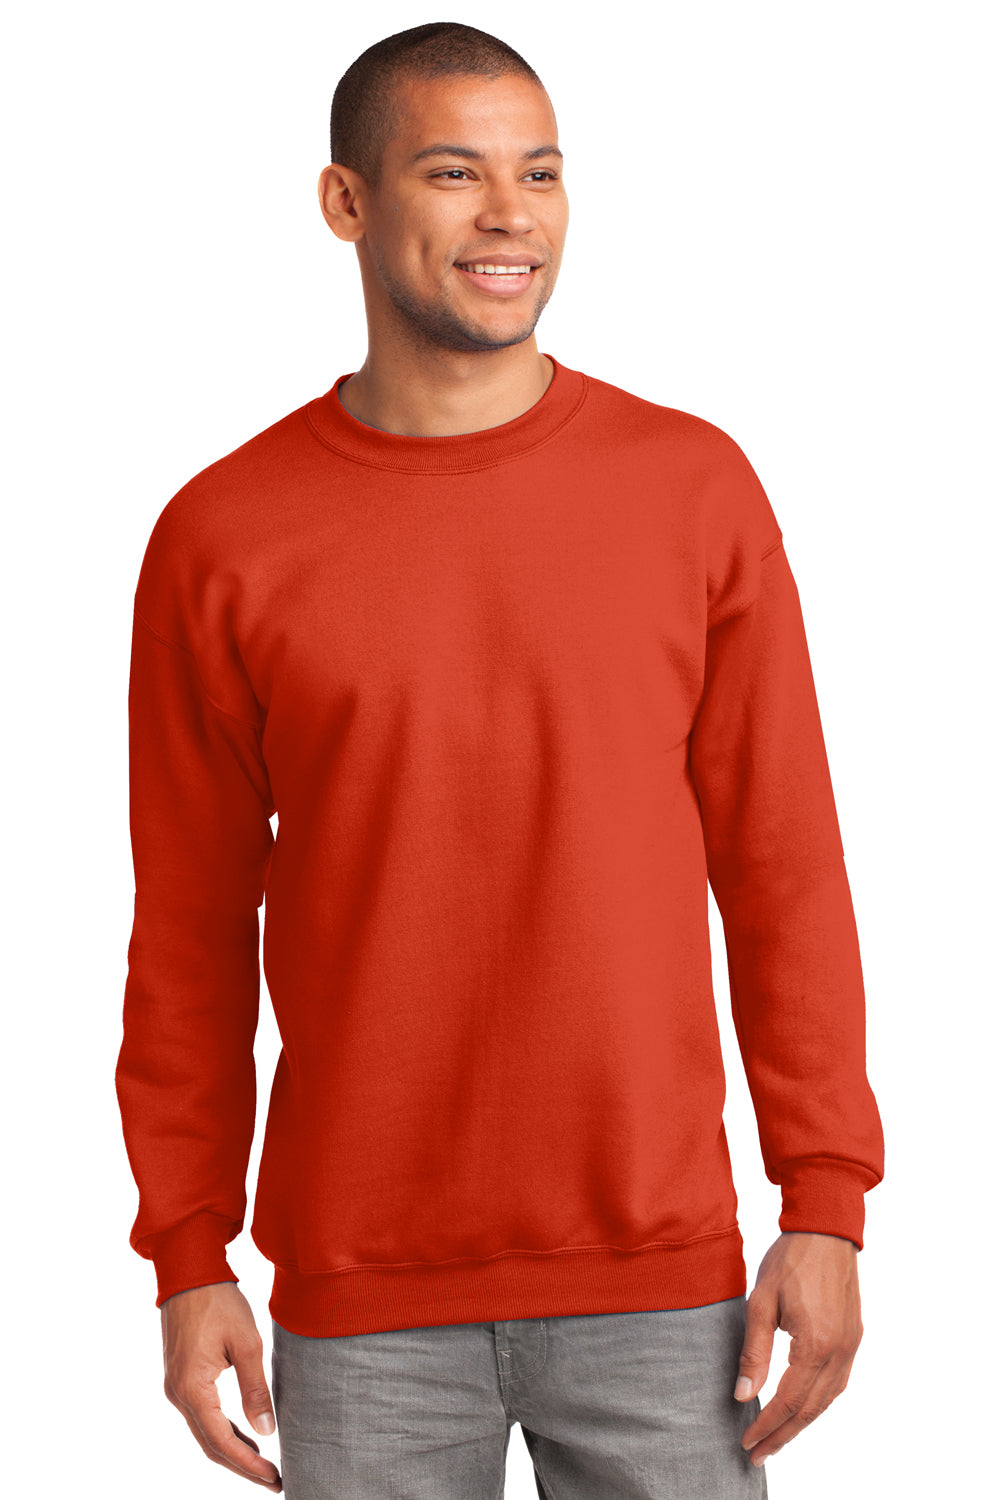 Port & Company PC90 Mens Essential Fleece Crewneck Sweatshirt Orange Front